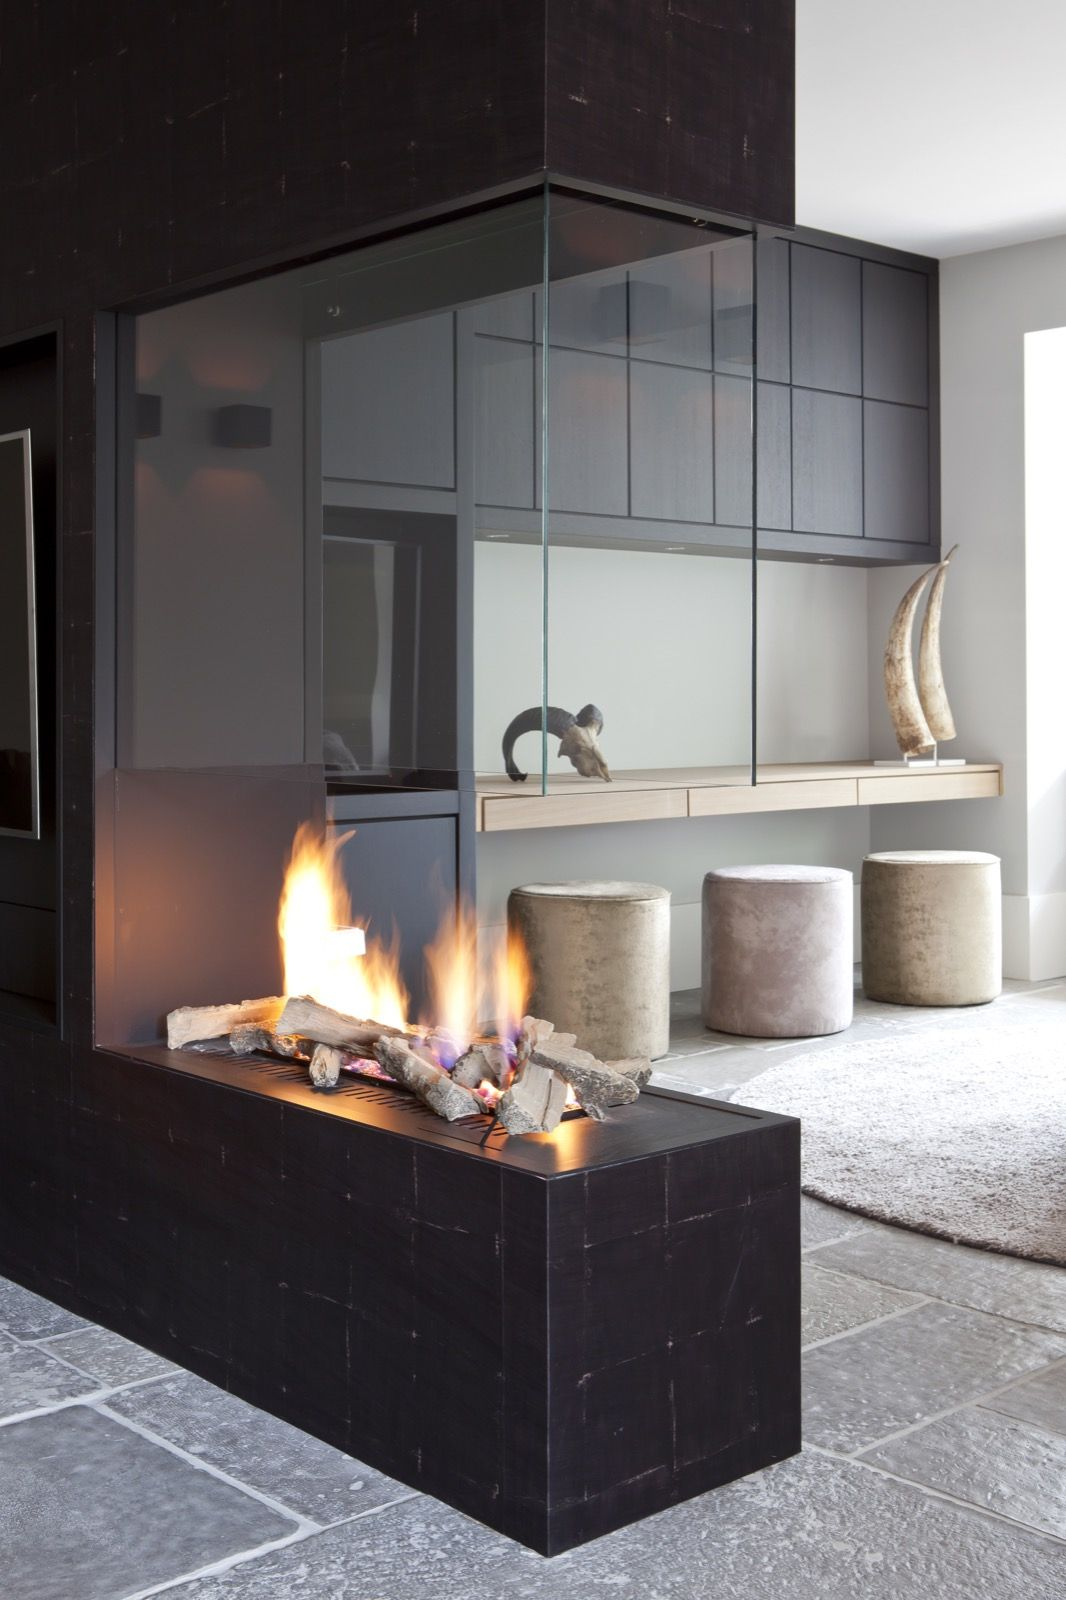 17 modern fireplace tile ideas best design intoxicating rh pinterest com